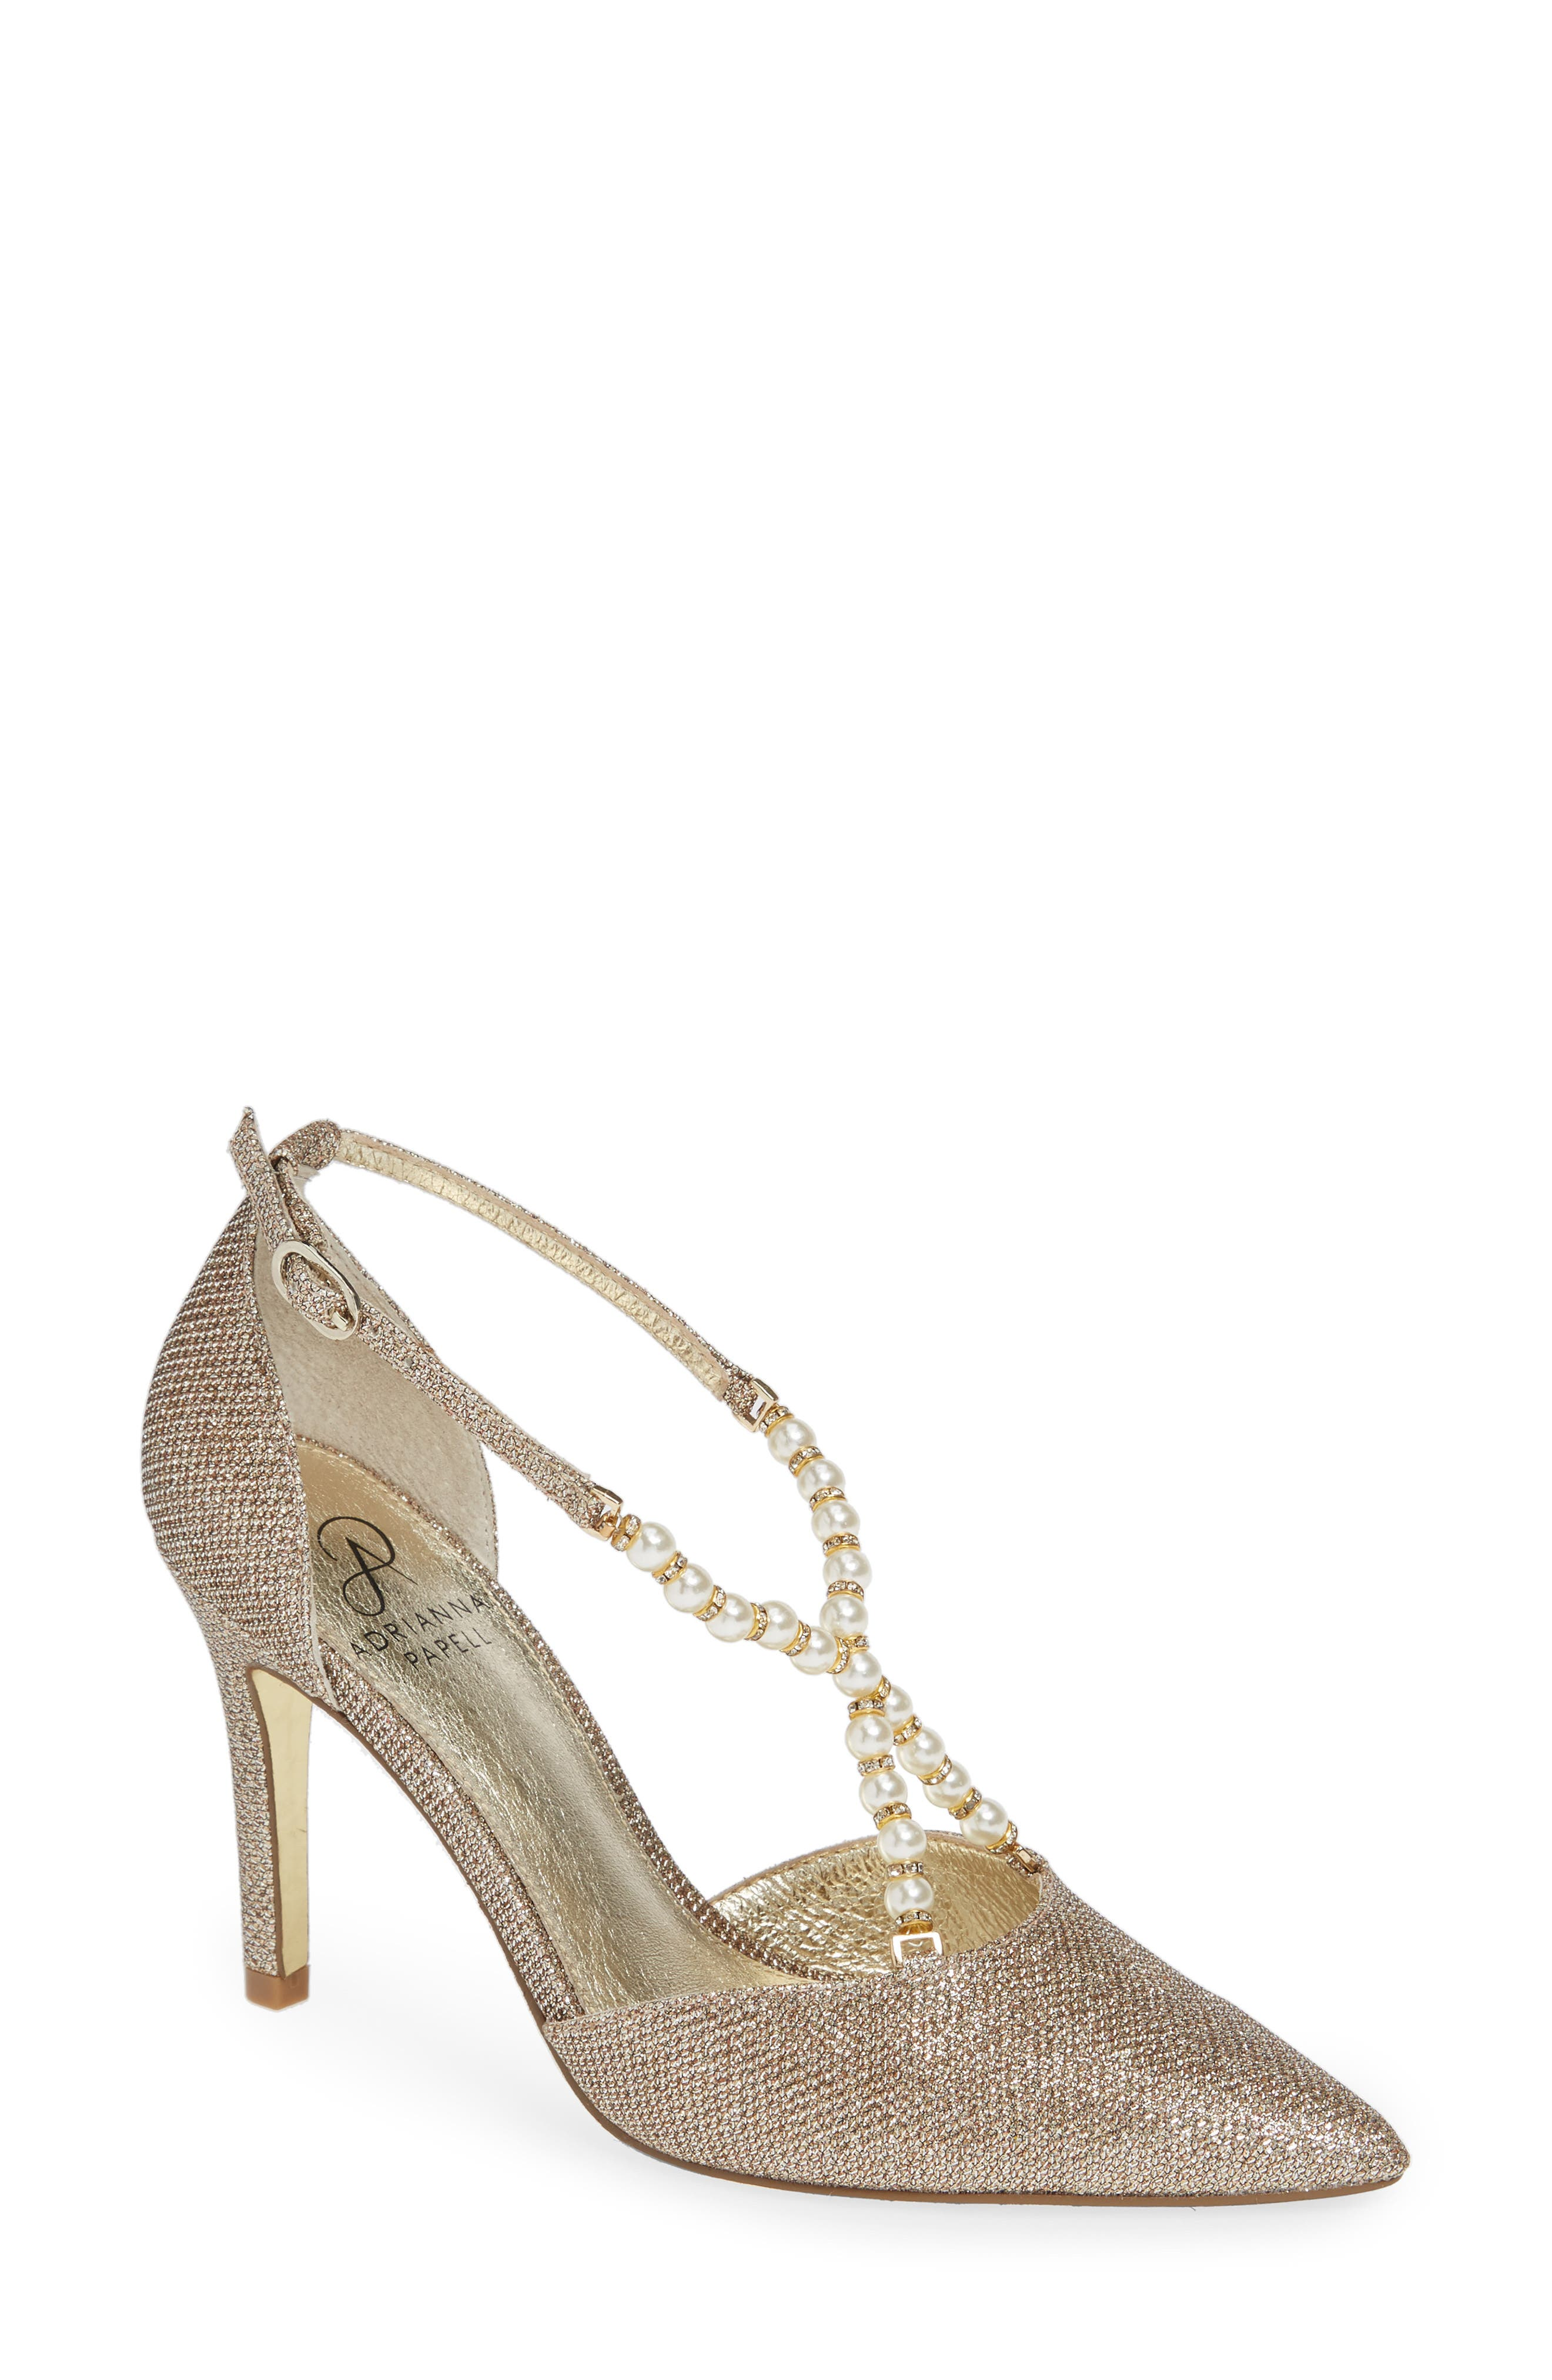 ADRIANNA PAPELL Pointed-Toe Pumps With Beaded Straps in Platino